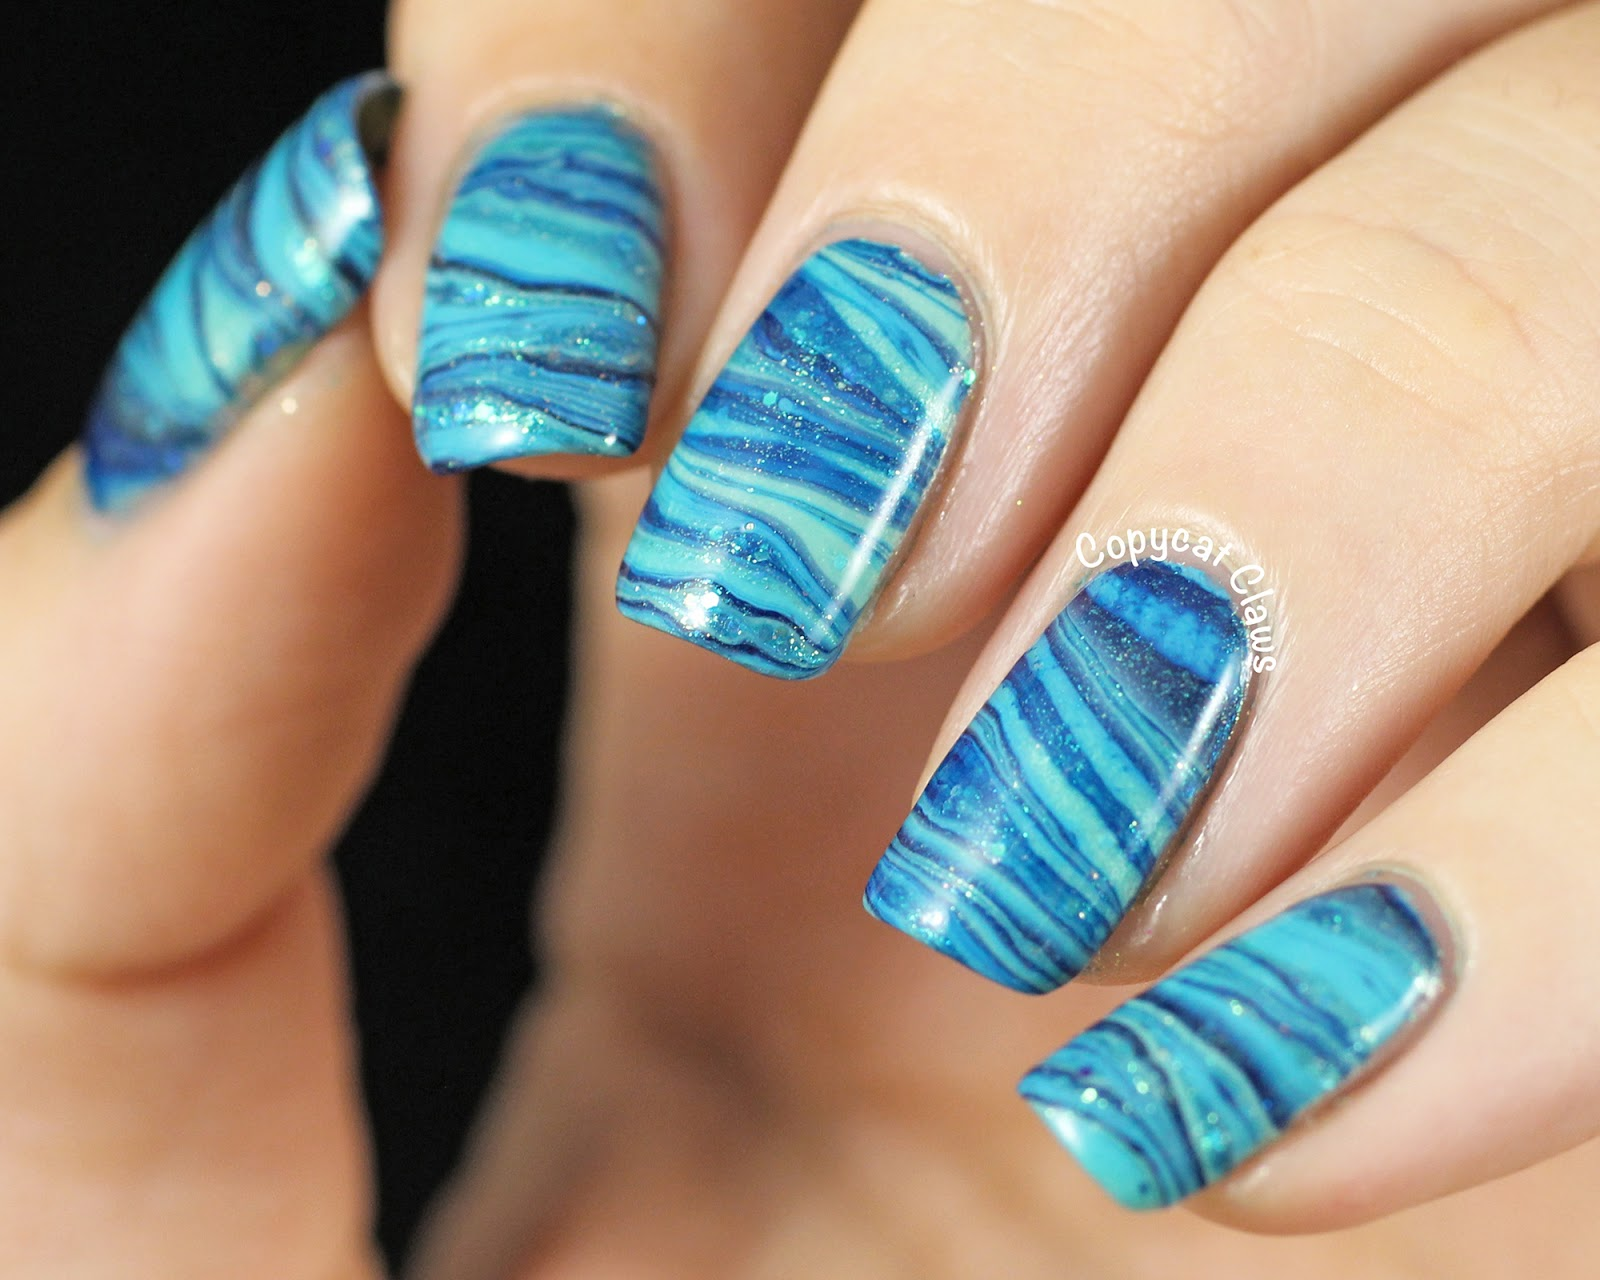 Copycat Claws 31dc2014 Day 20 Blue Water Marble Nail Art